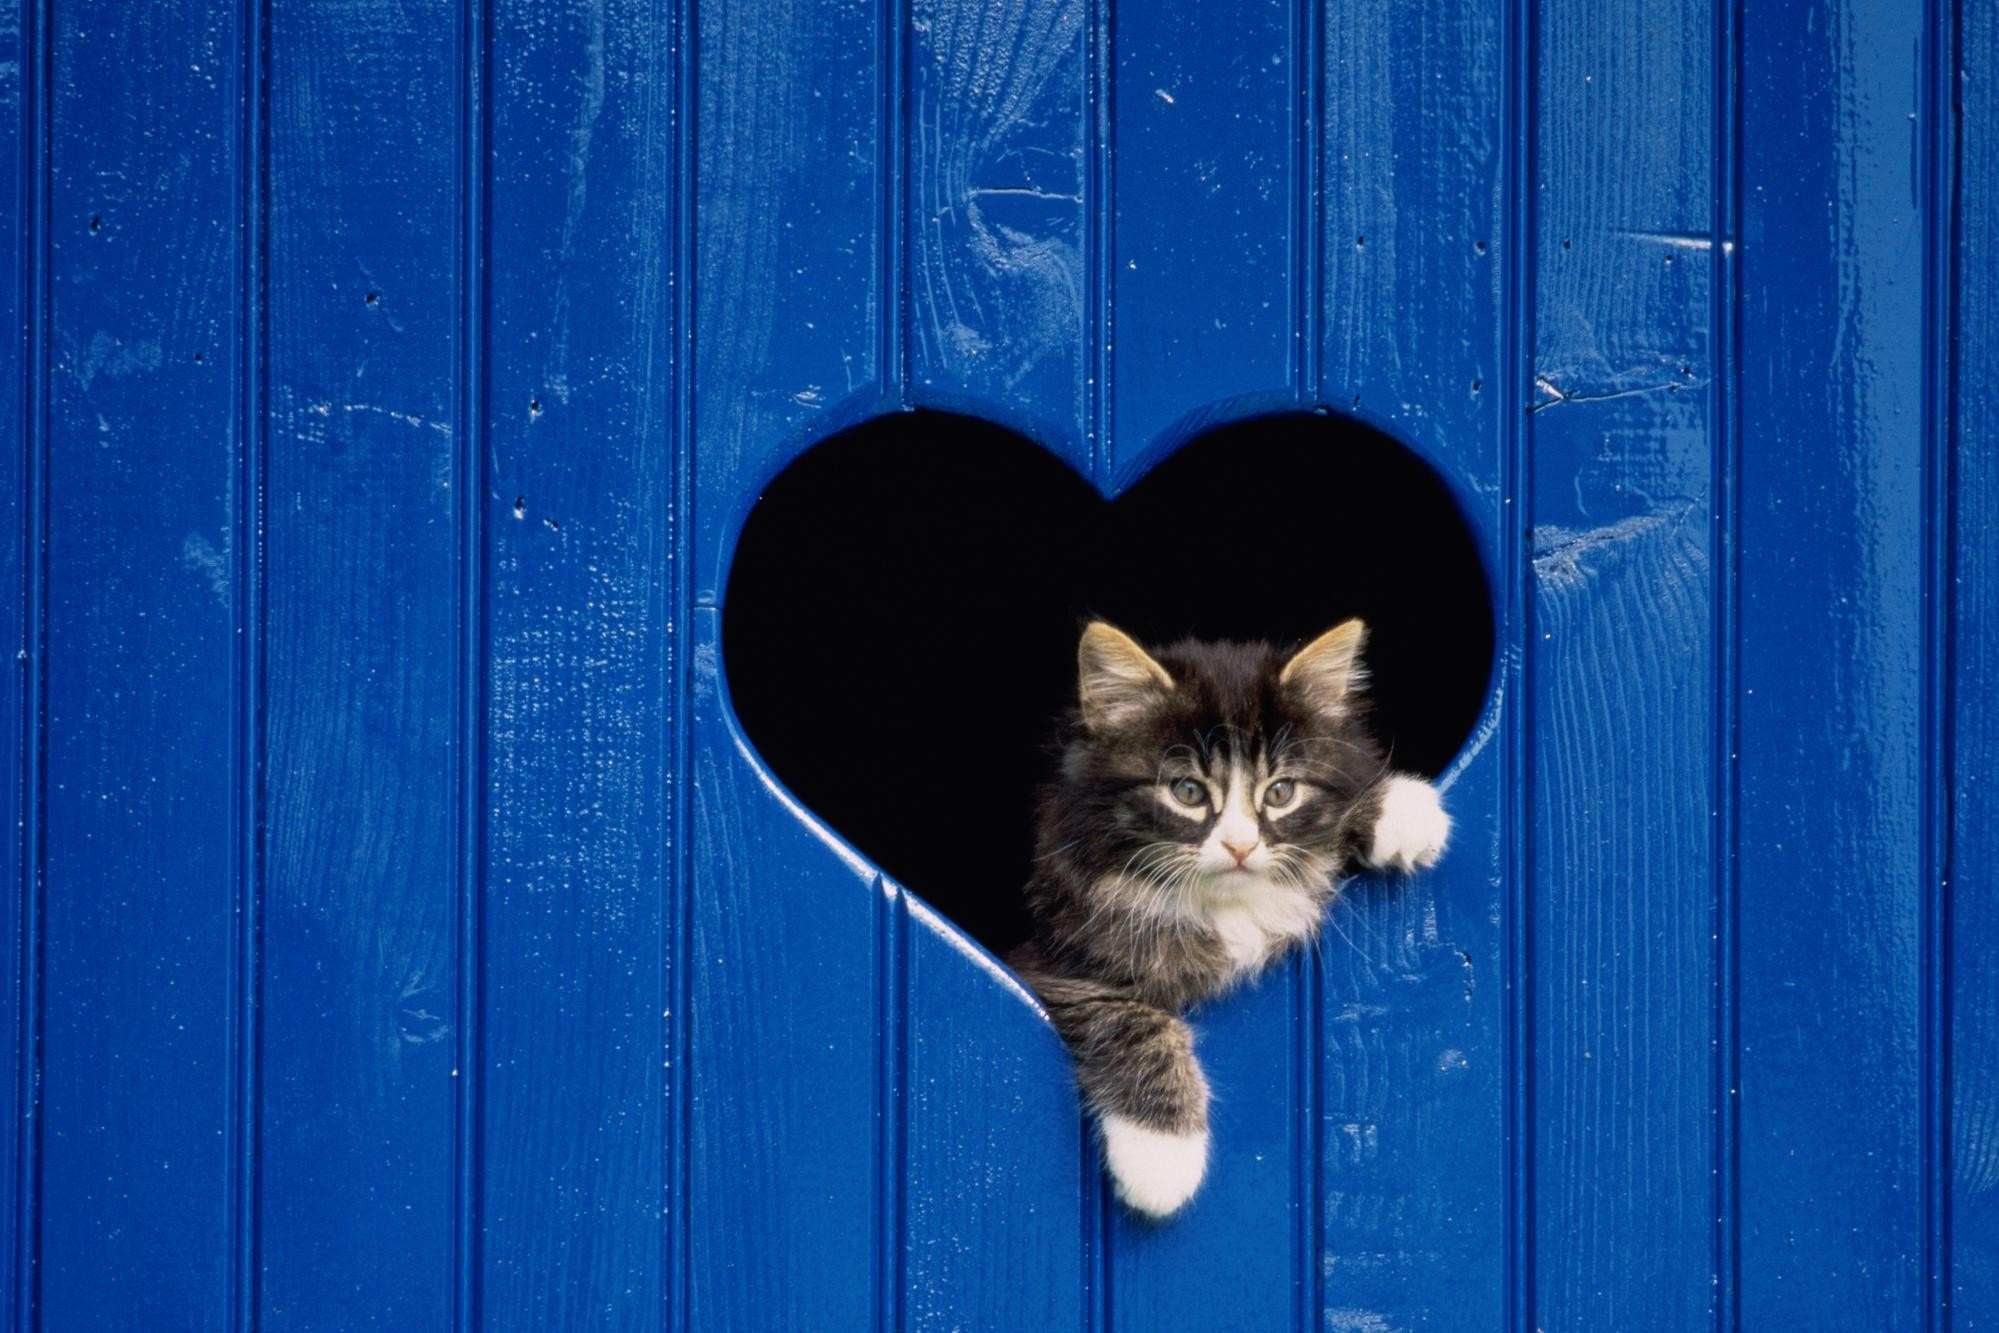 67330 download wallpaper Animals, Cat, Peek Out, Look Out, Door, Heart, Wood, Wooden screensavers and pictures for free